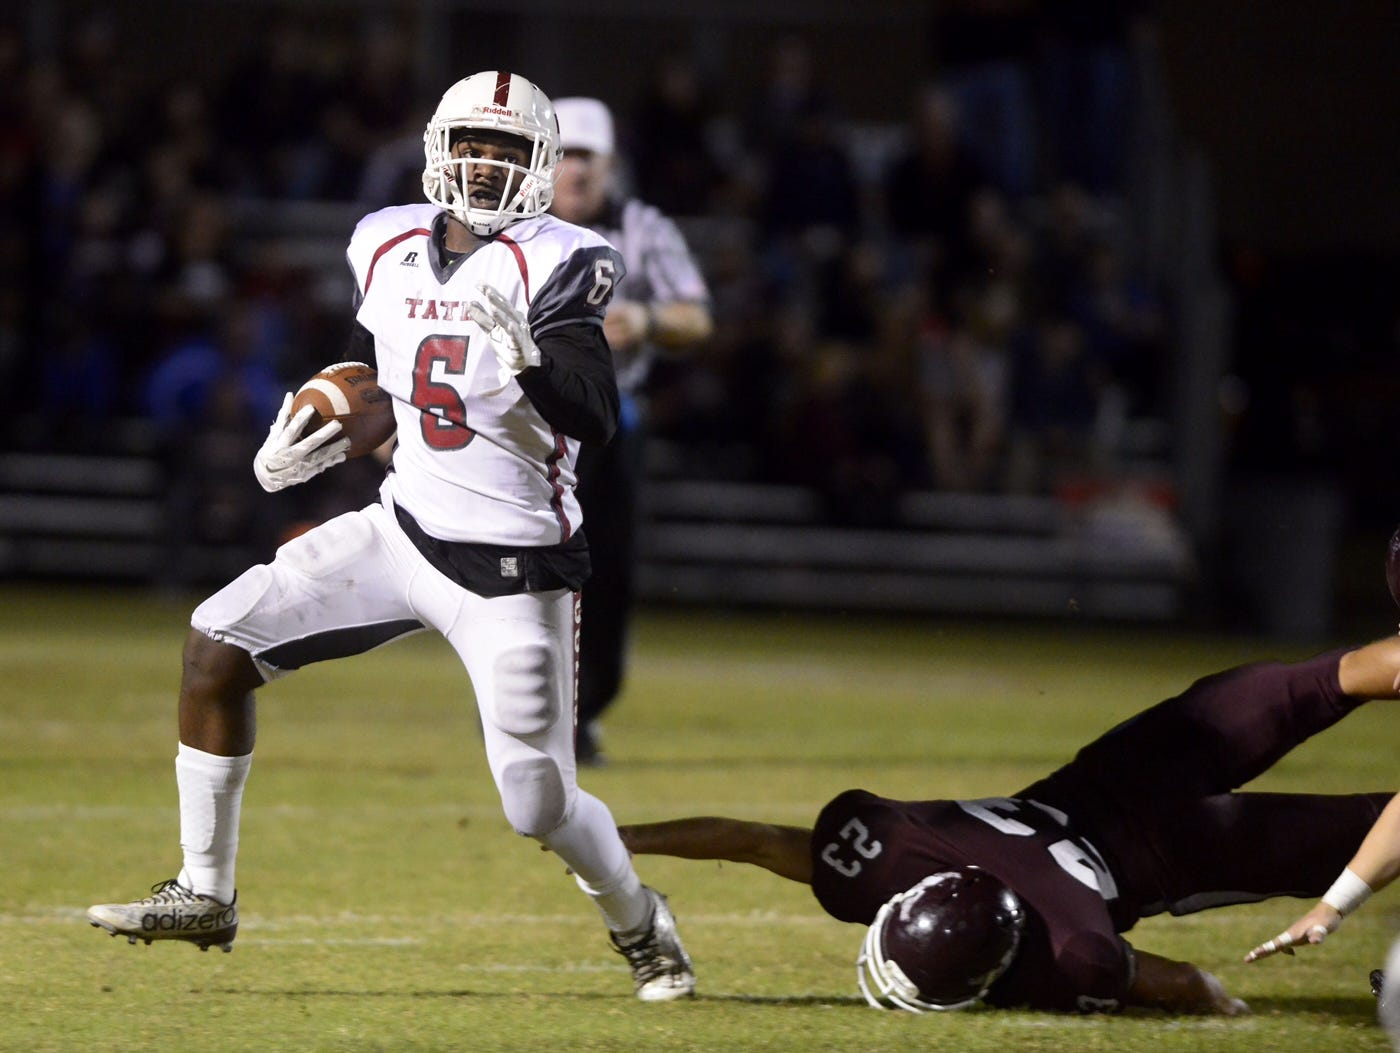 Tate High School's Dee Thompson avoids a tackle from Niceville's Scott Armfield Friday as the Aggies hold on to beat the Eagles 21-20. Tate advances to the Class 6A State Semifinals vs. Seffner Armwood.